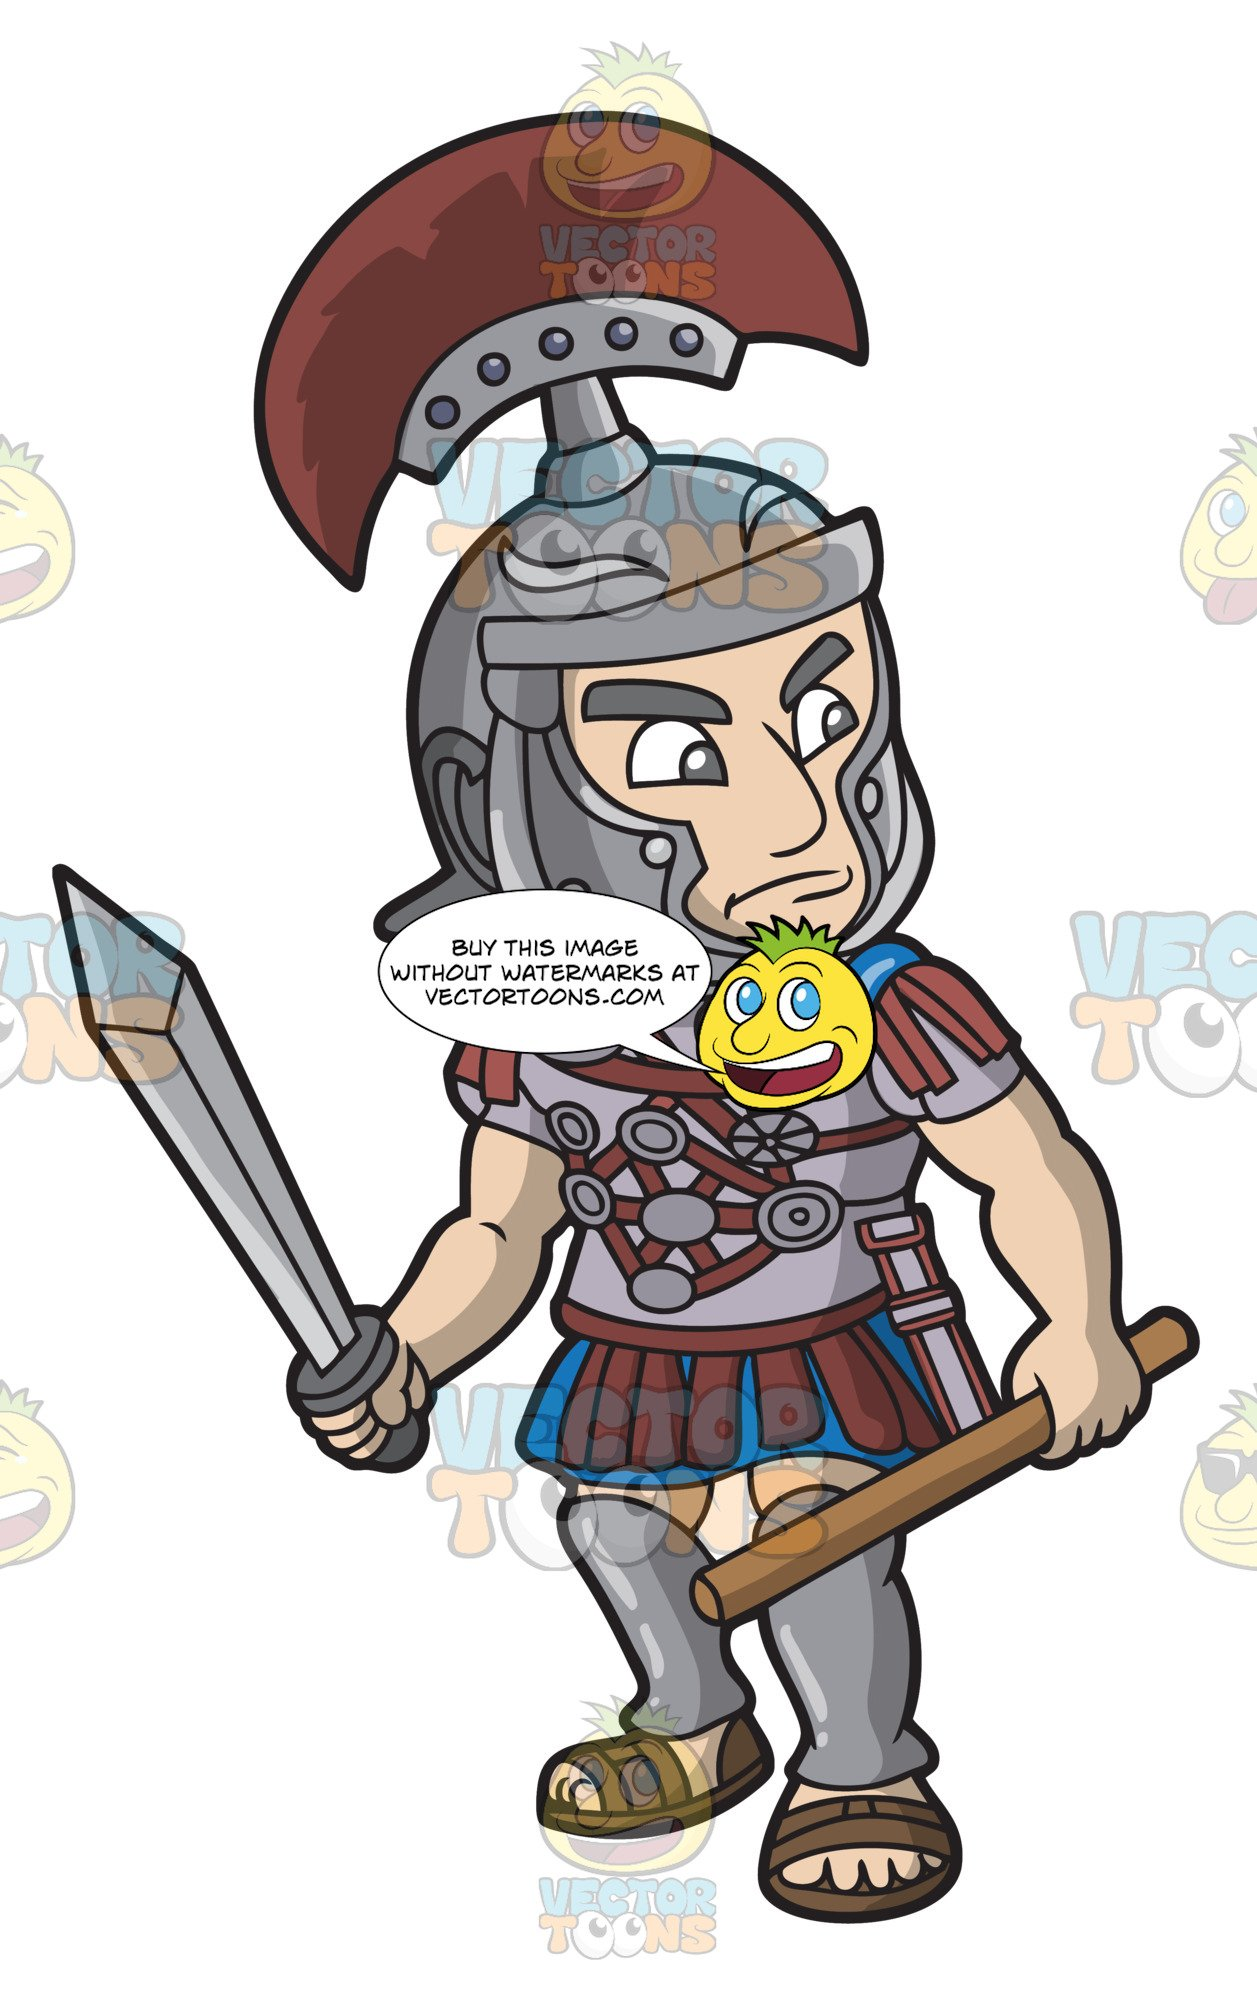 120 000 soldiers clipart